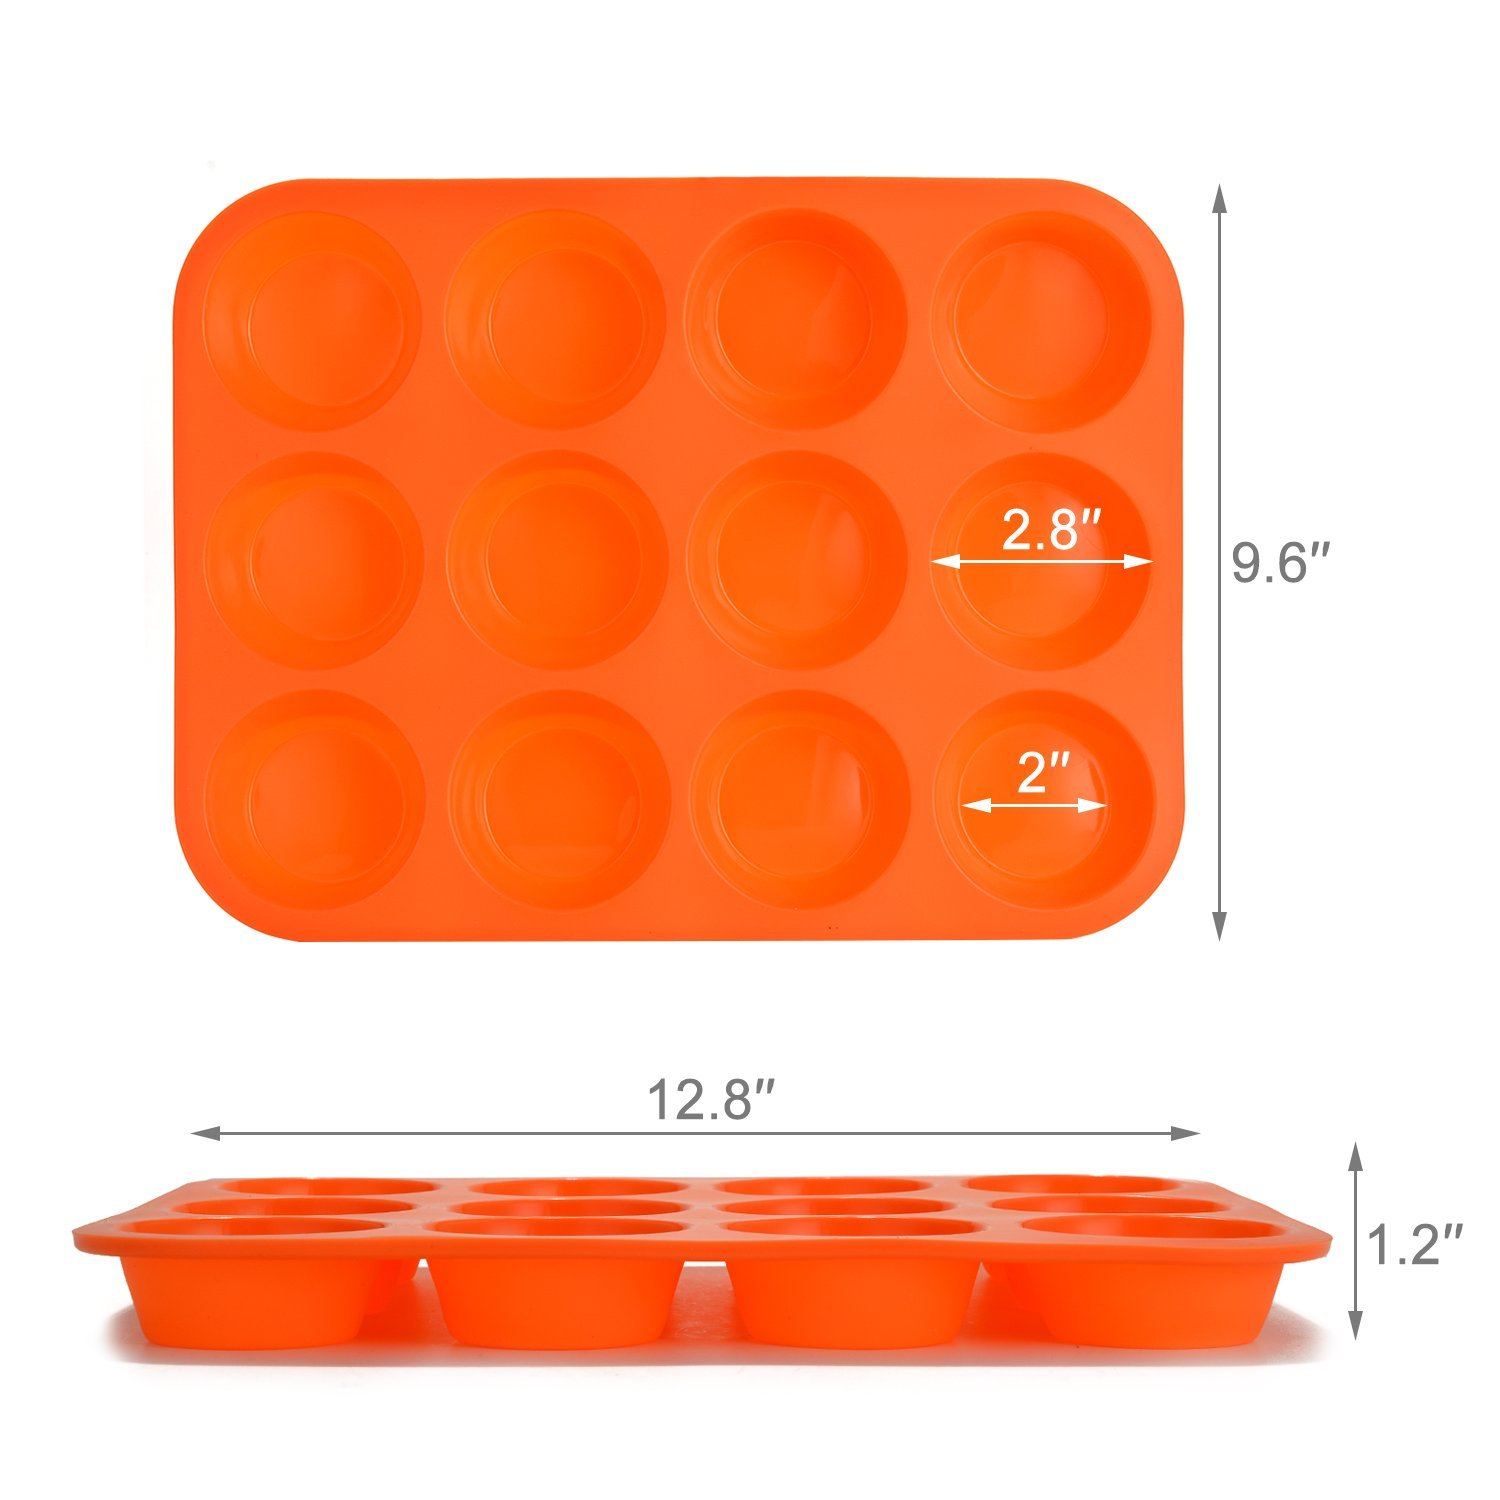 Fitnate Silicone Muffin Pan, 12 Cup Premium Cupcakes Baking Pan, Non-Stick, BPA Free Food Grade Silicone Mold Material – Dishwasher/Microwave Safe